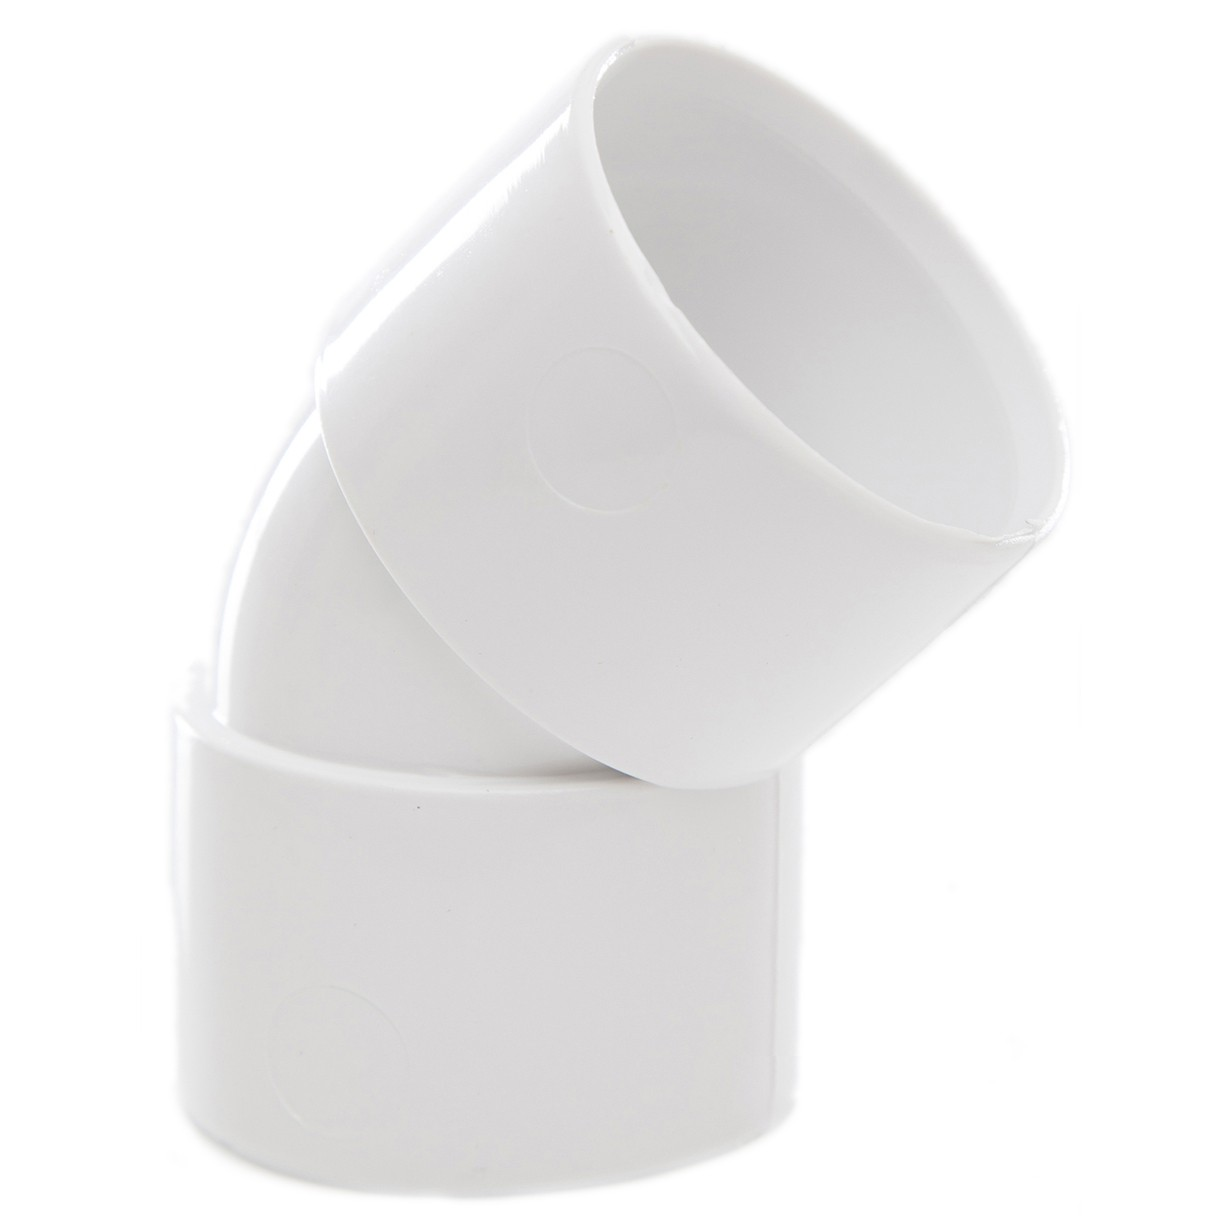 Polypipe 32mm Solvent Weld Waste 45 Degree Obtuse Bend - White